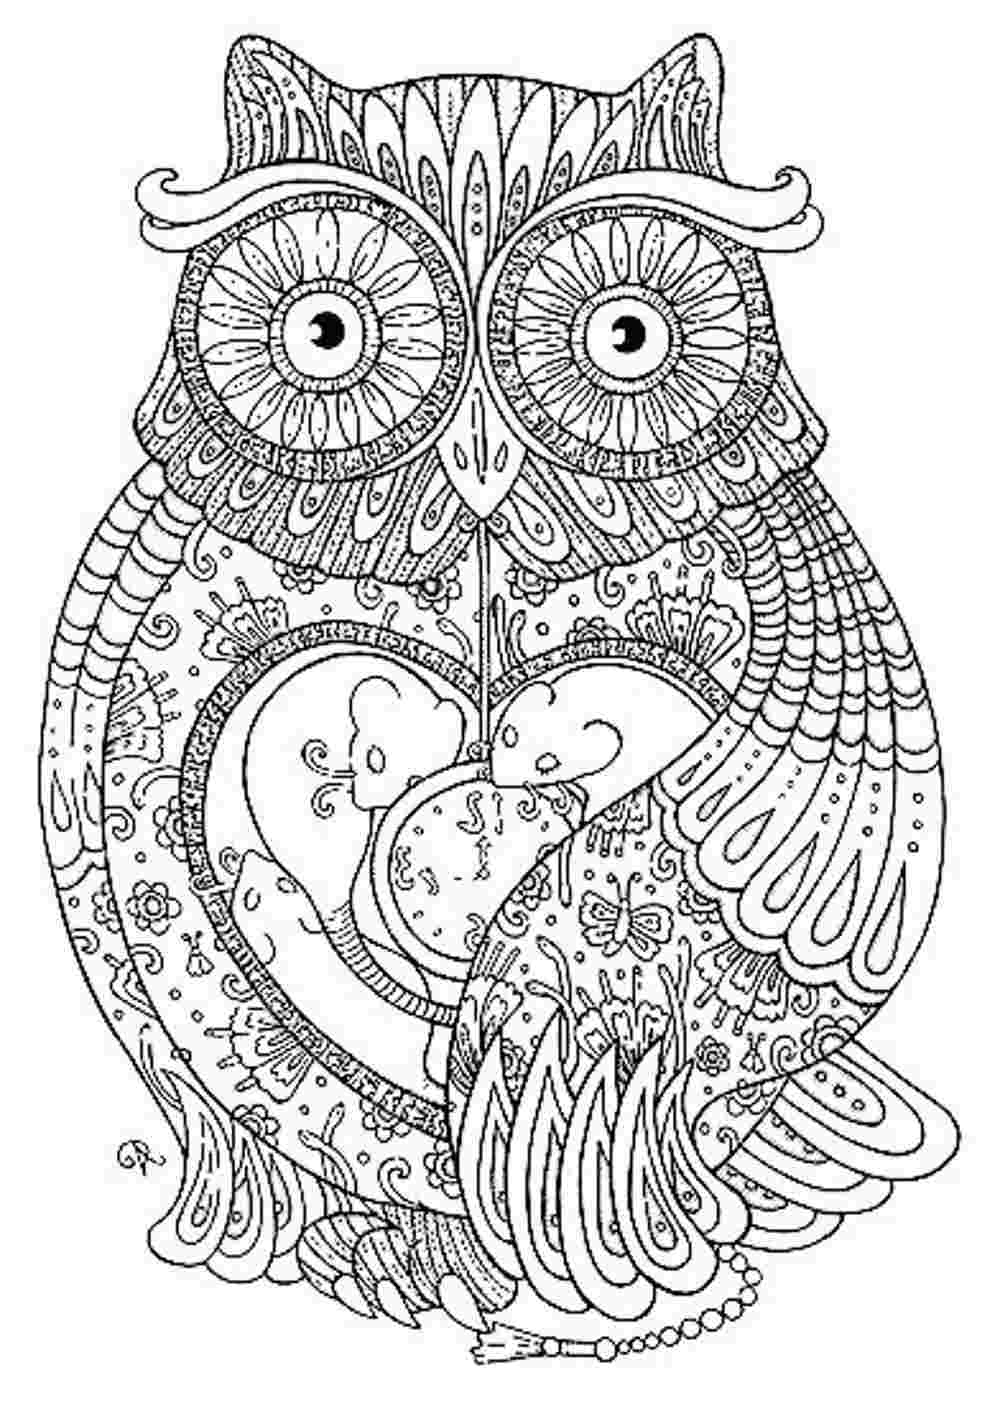 Coloring Pages For Adults Difficult Animals At Getdrawings Com